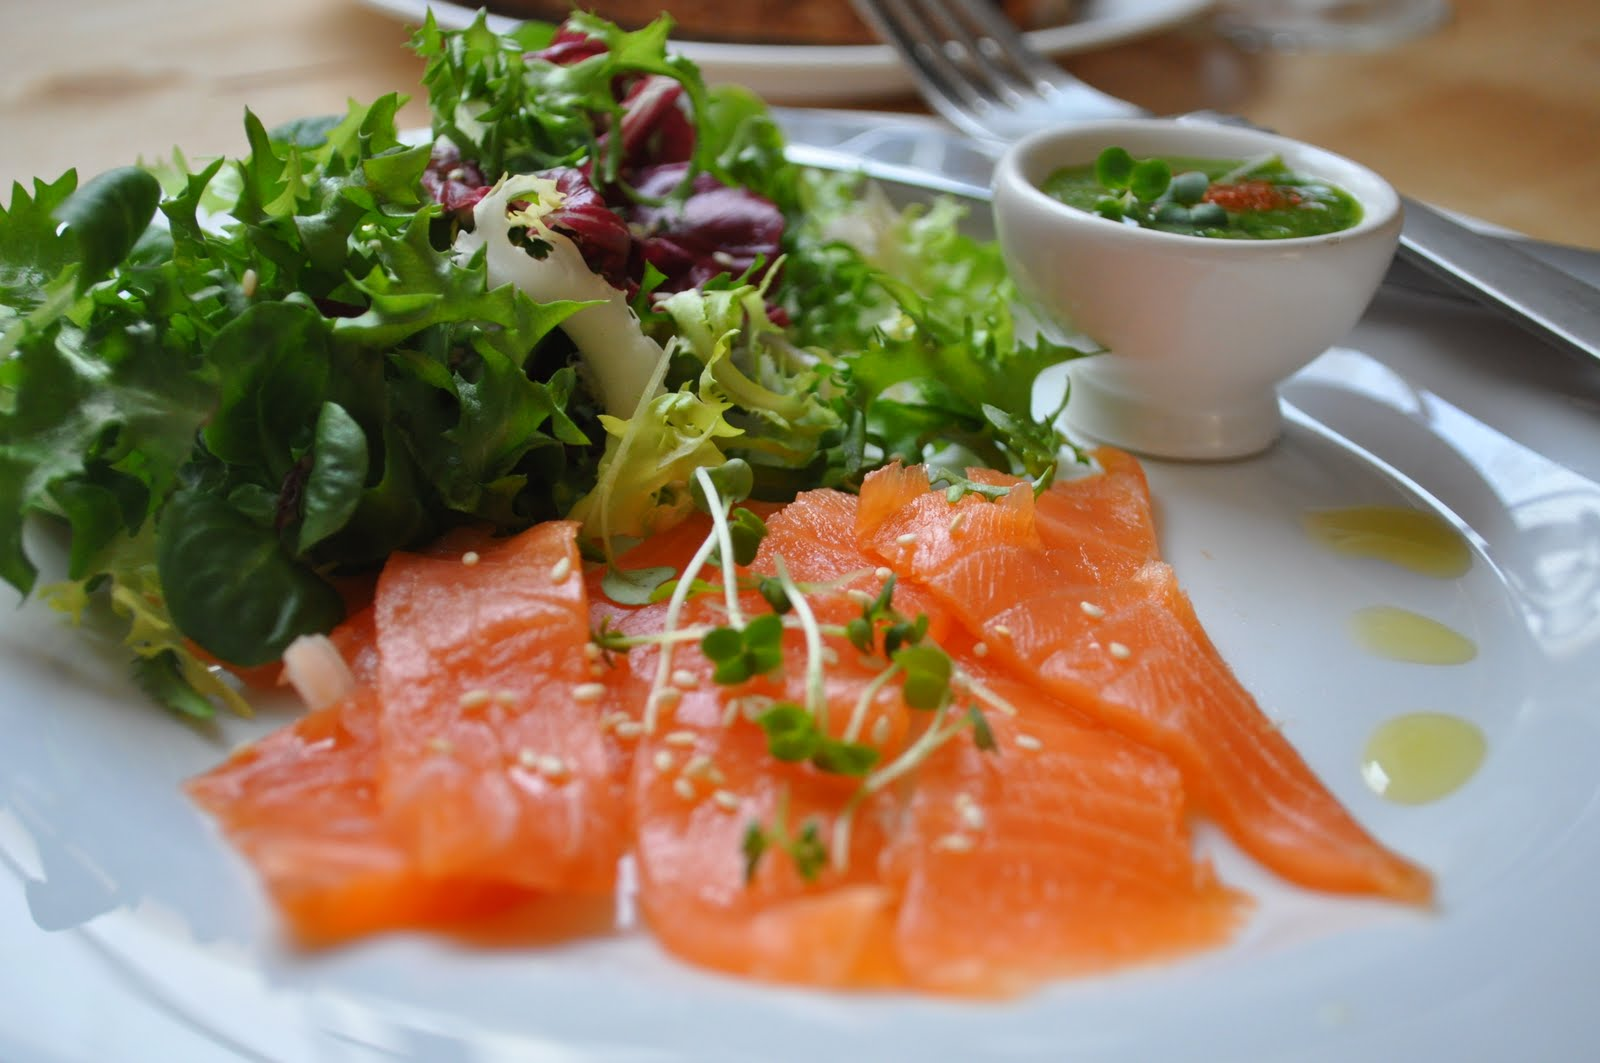 Apron's Delight: Smoked Salmon Salad with Parsley Vinaigrette Dressing